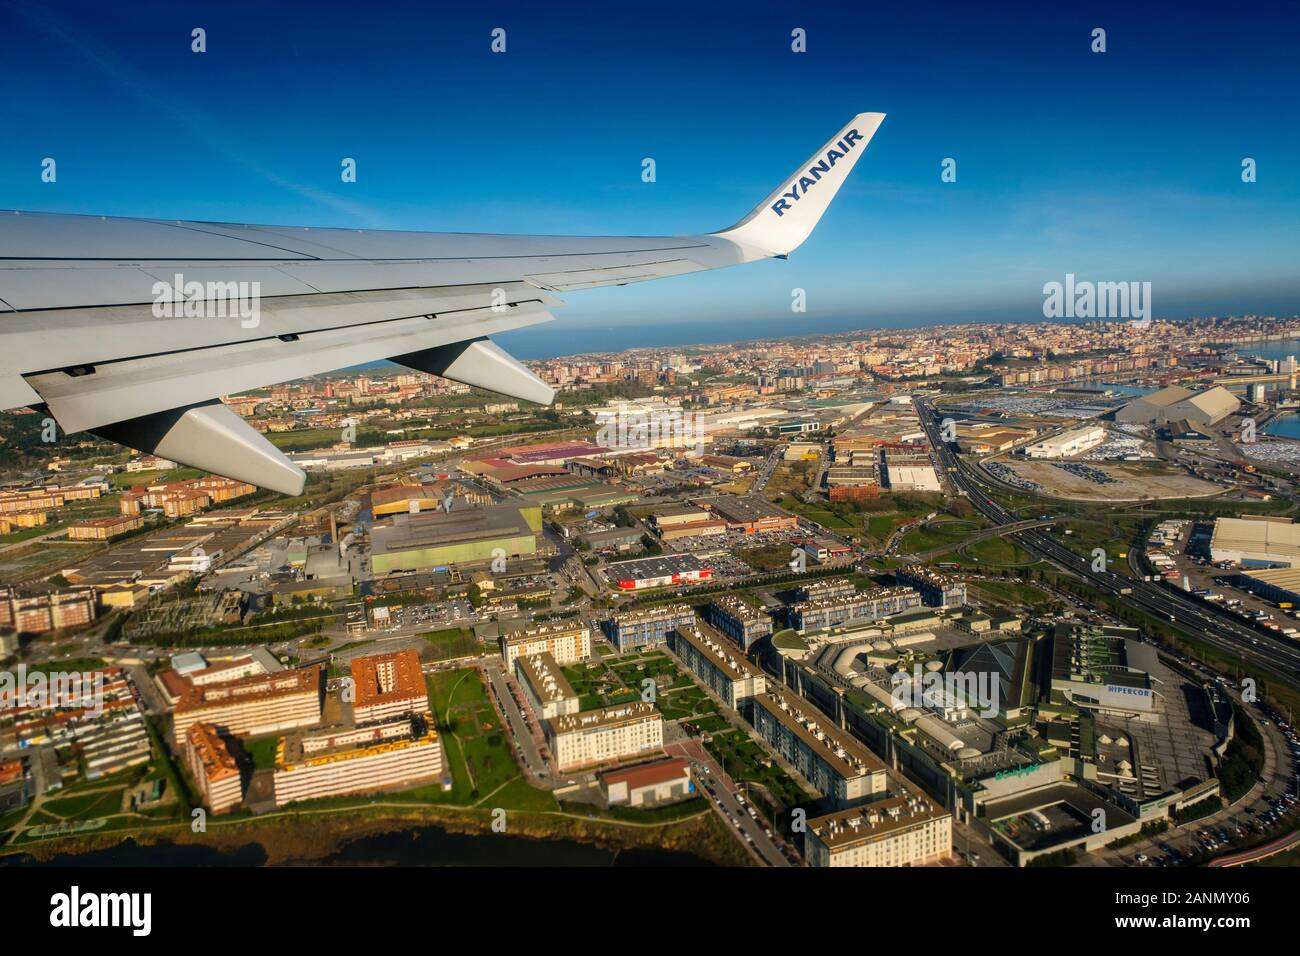 Plane flying over Santander, Cantabrian Sea. Cantabria, north Spain. Europe Stock Photo